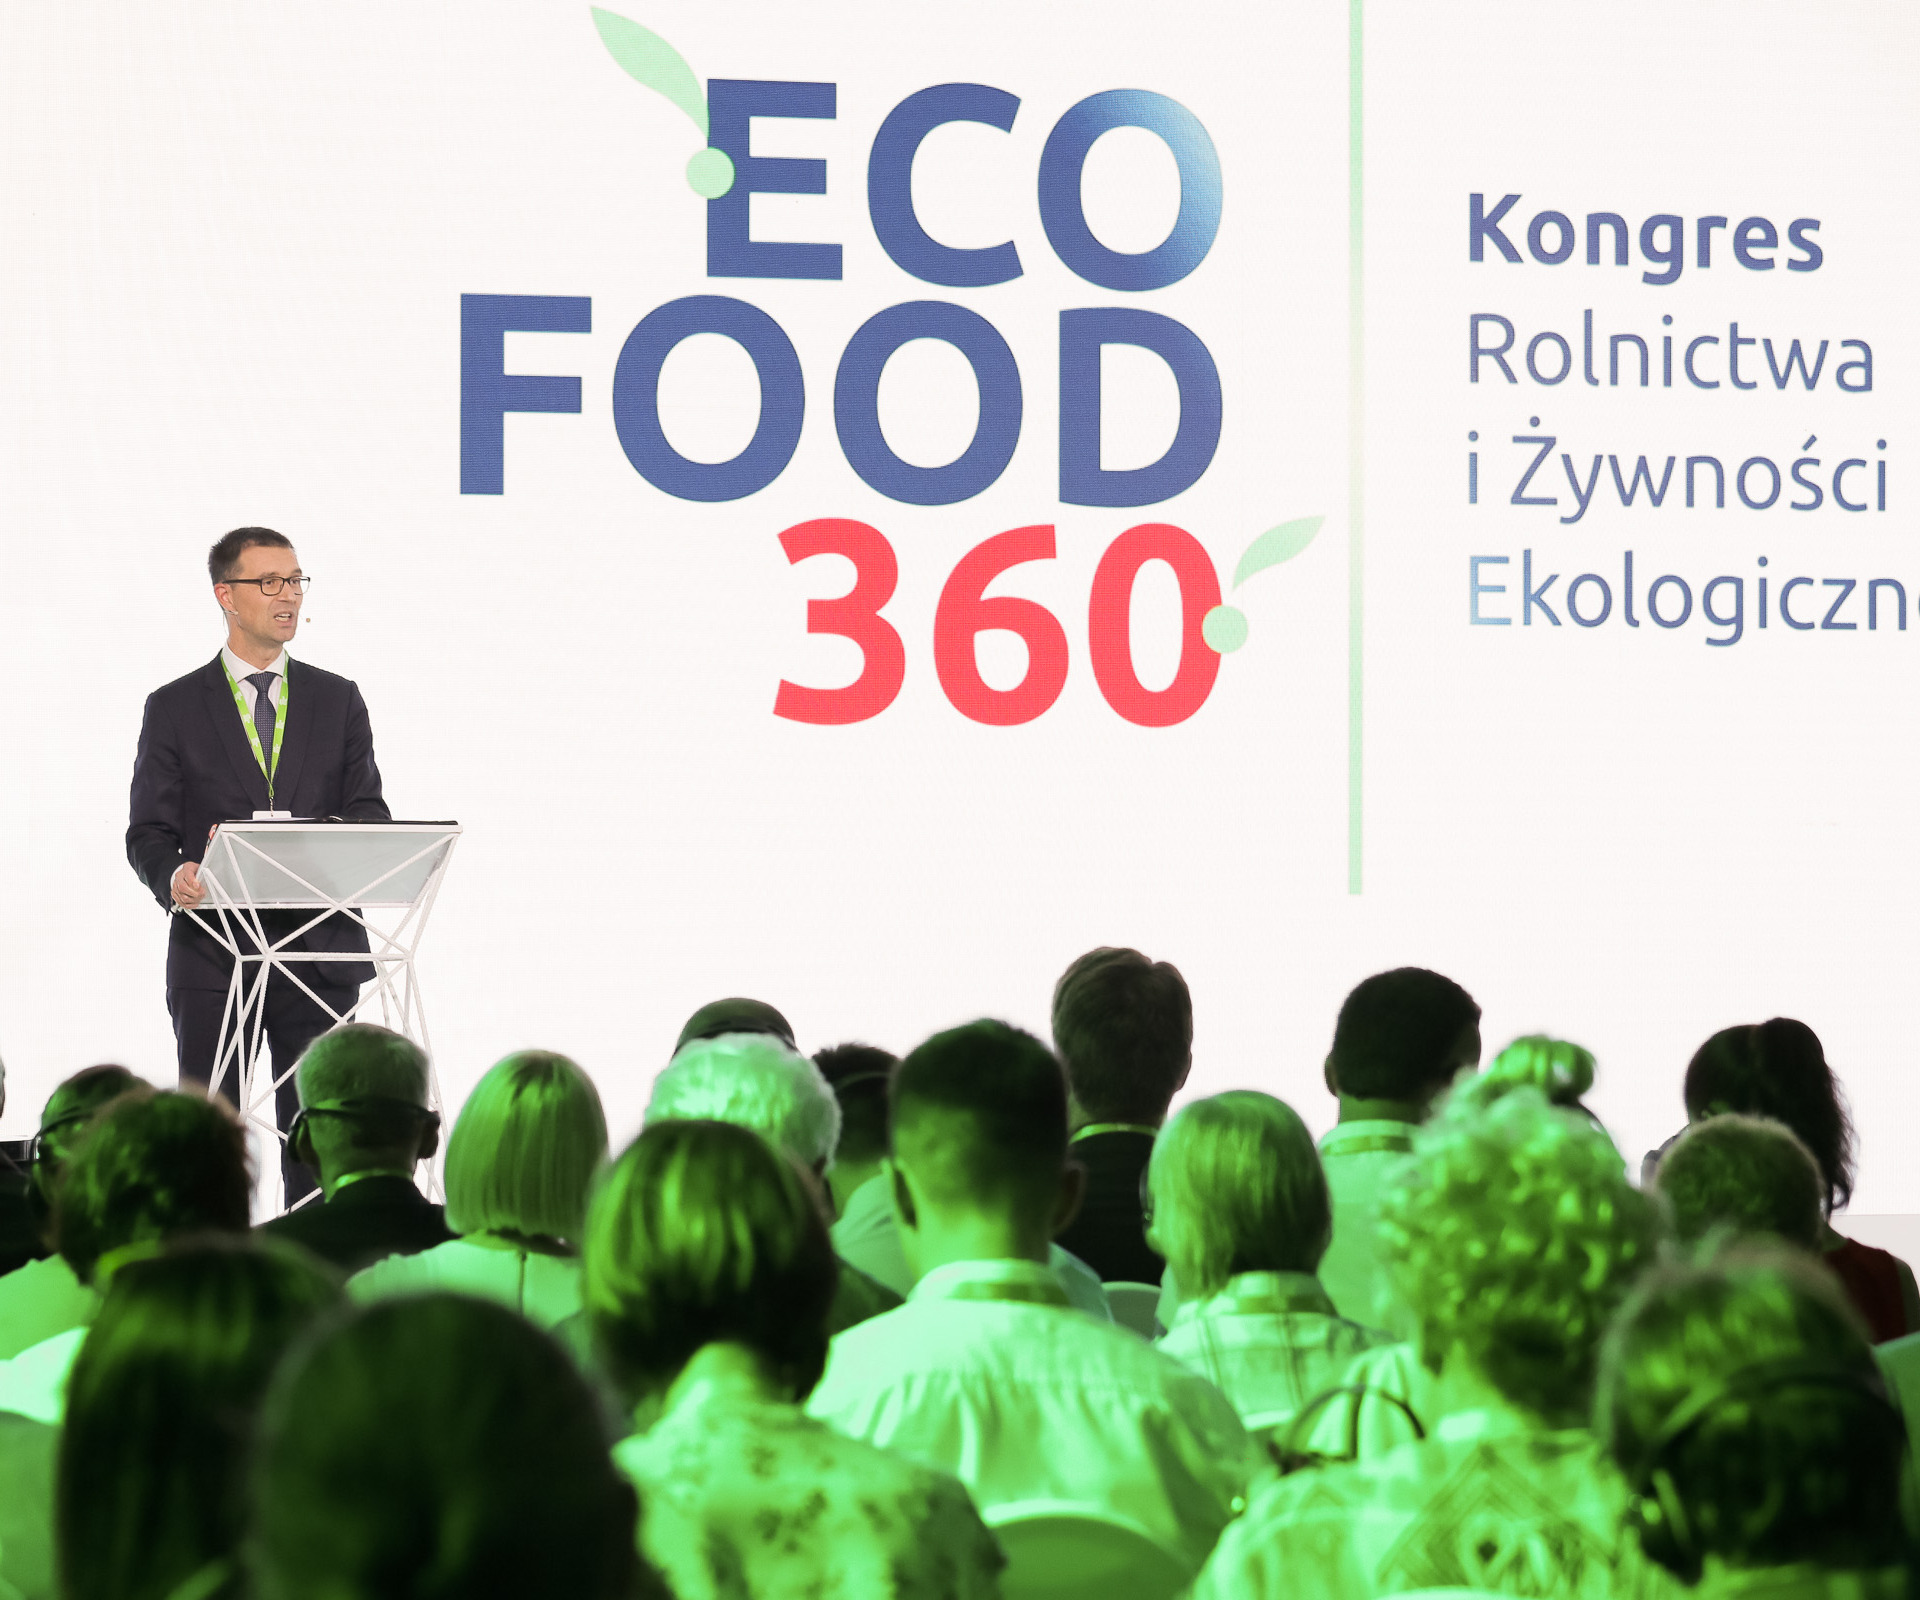 ECO FOOD 360 Congress